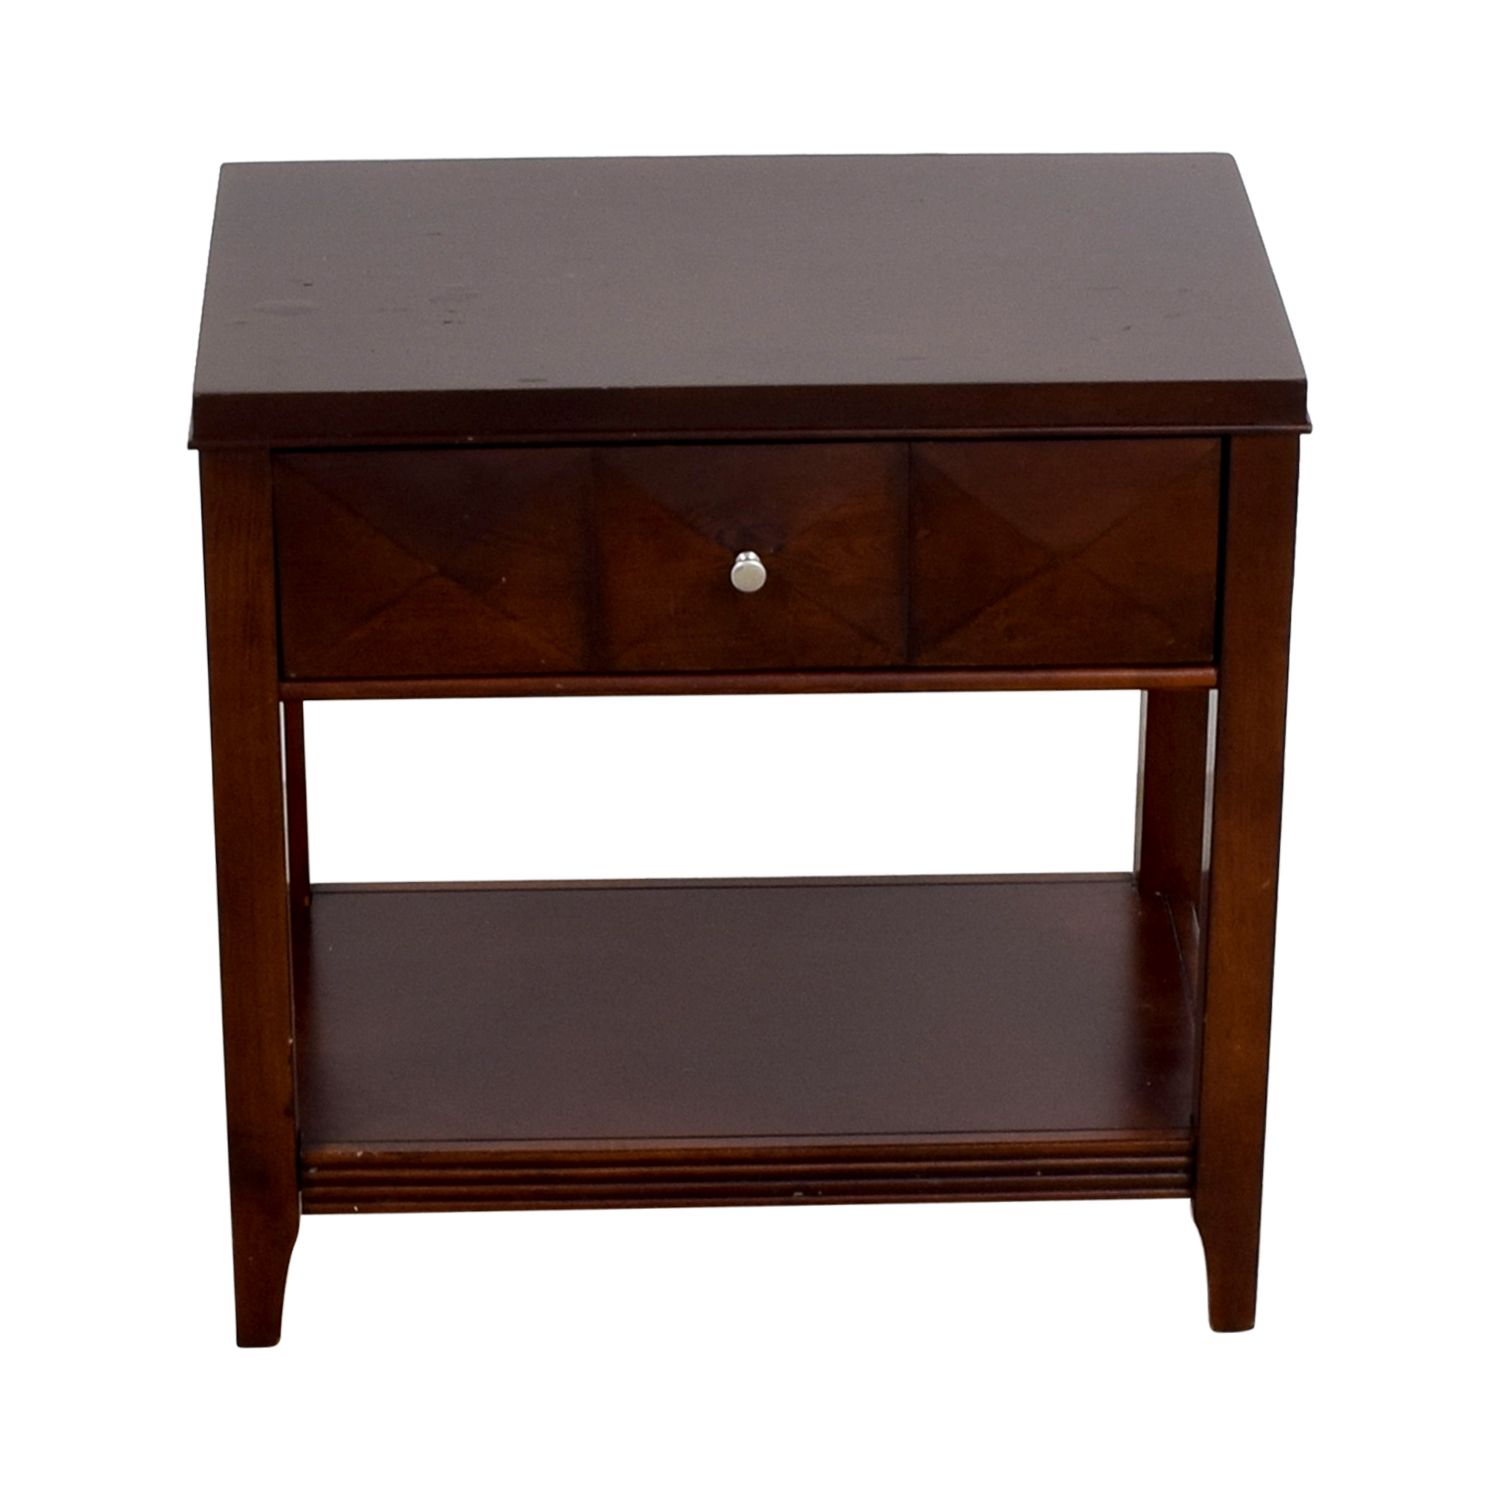 Raymour & Flanigan Raymour & Flanigan Espresso Single-Drawer Nightstand